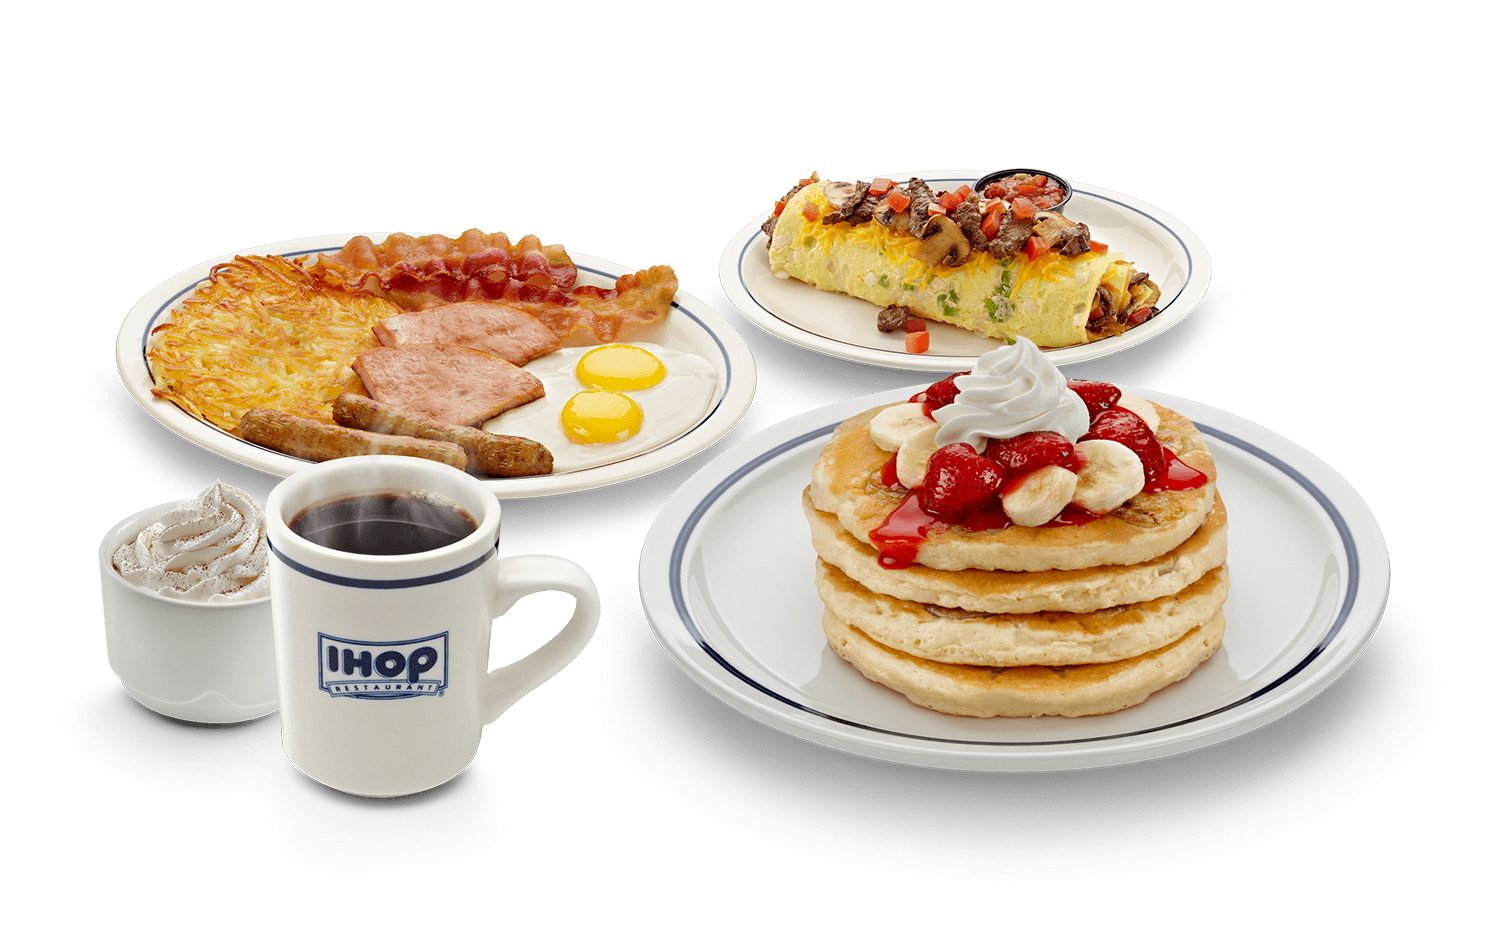 Restaurant menu, map for IHOP located in , Las Vegas NV, Las Vegas Blvd downloadsolutionles0f.cfon: Las Vegas Blvd S, , NV.